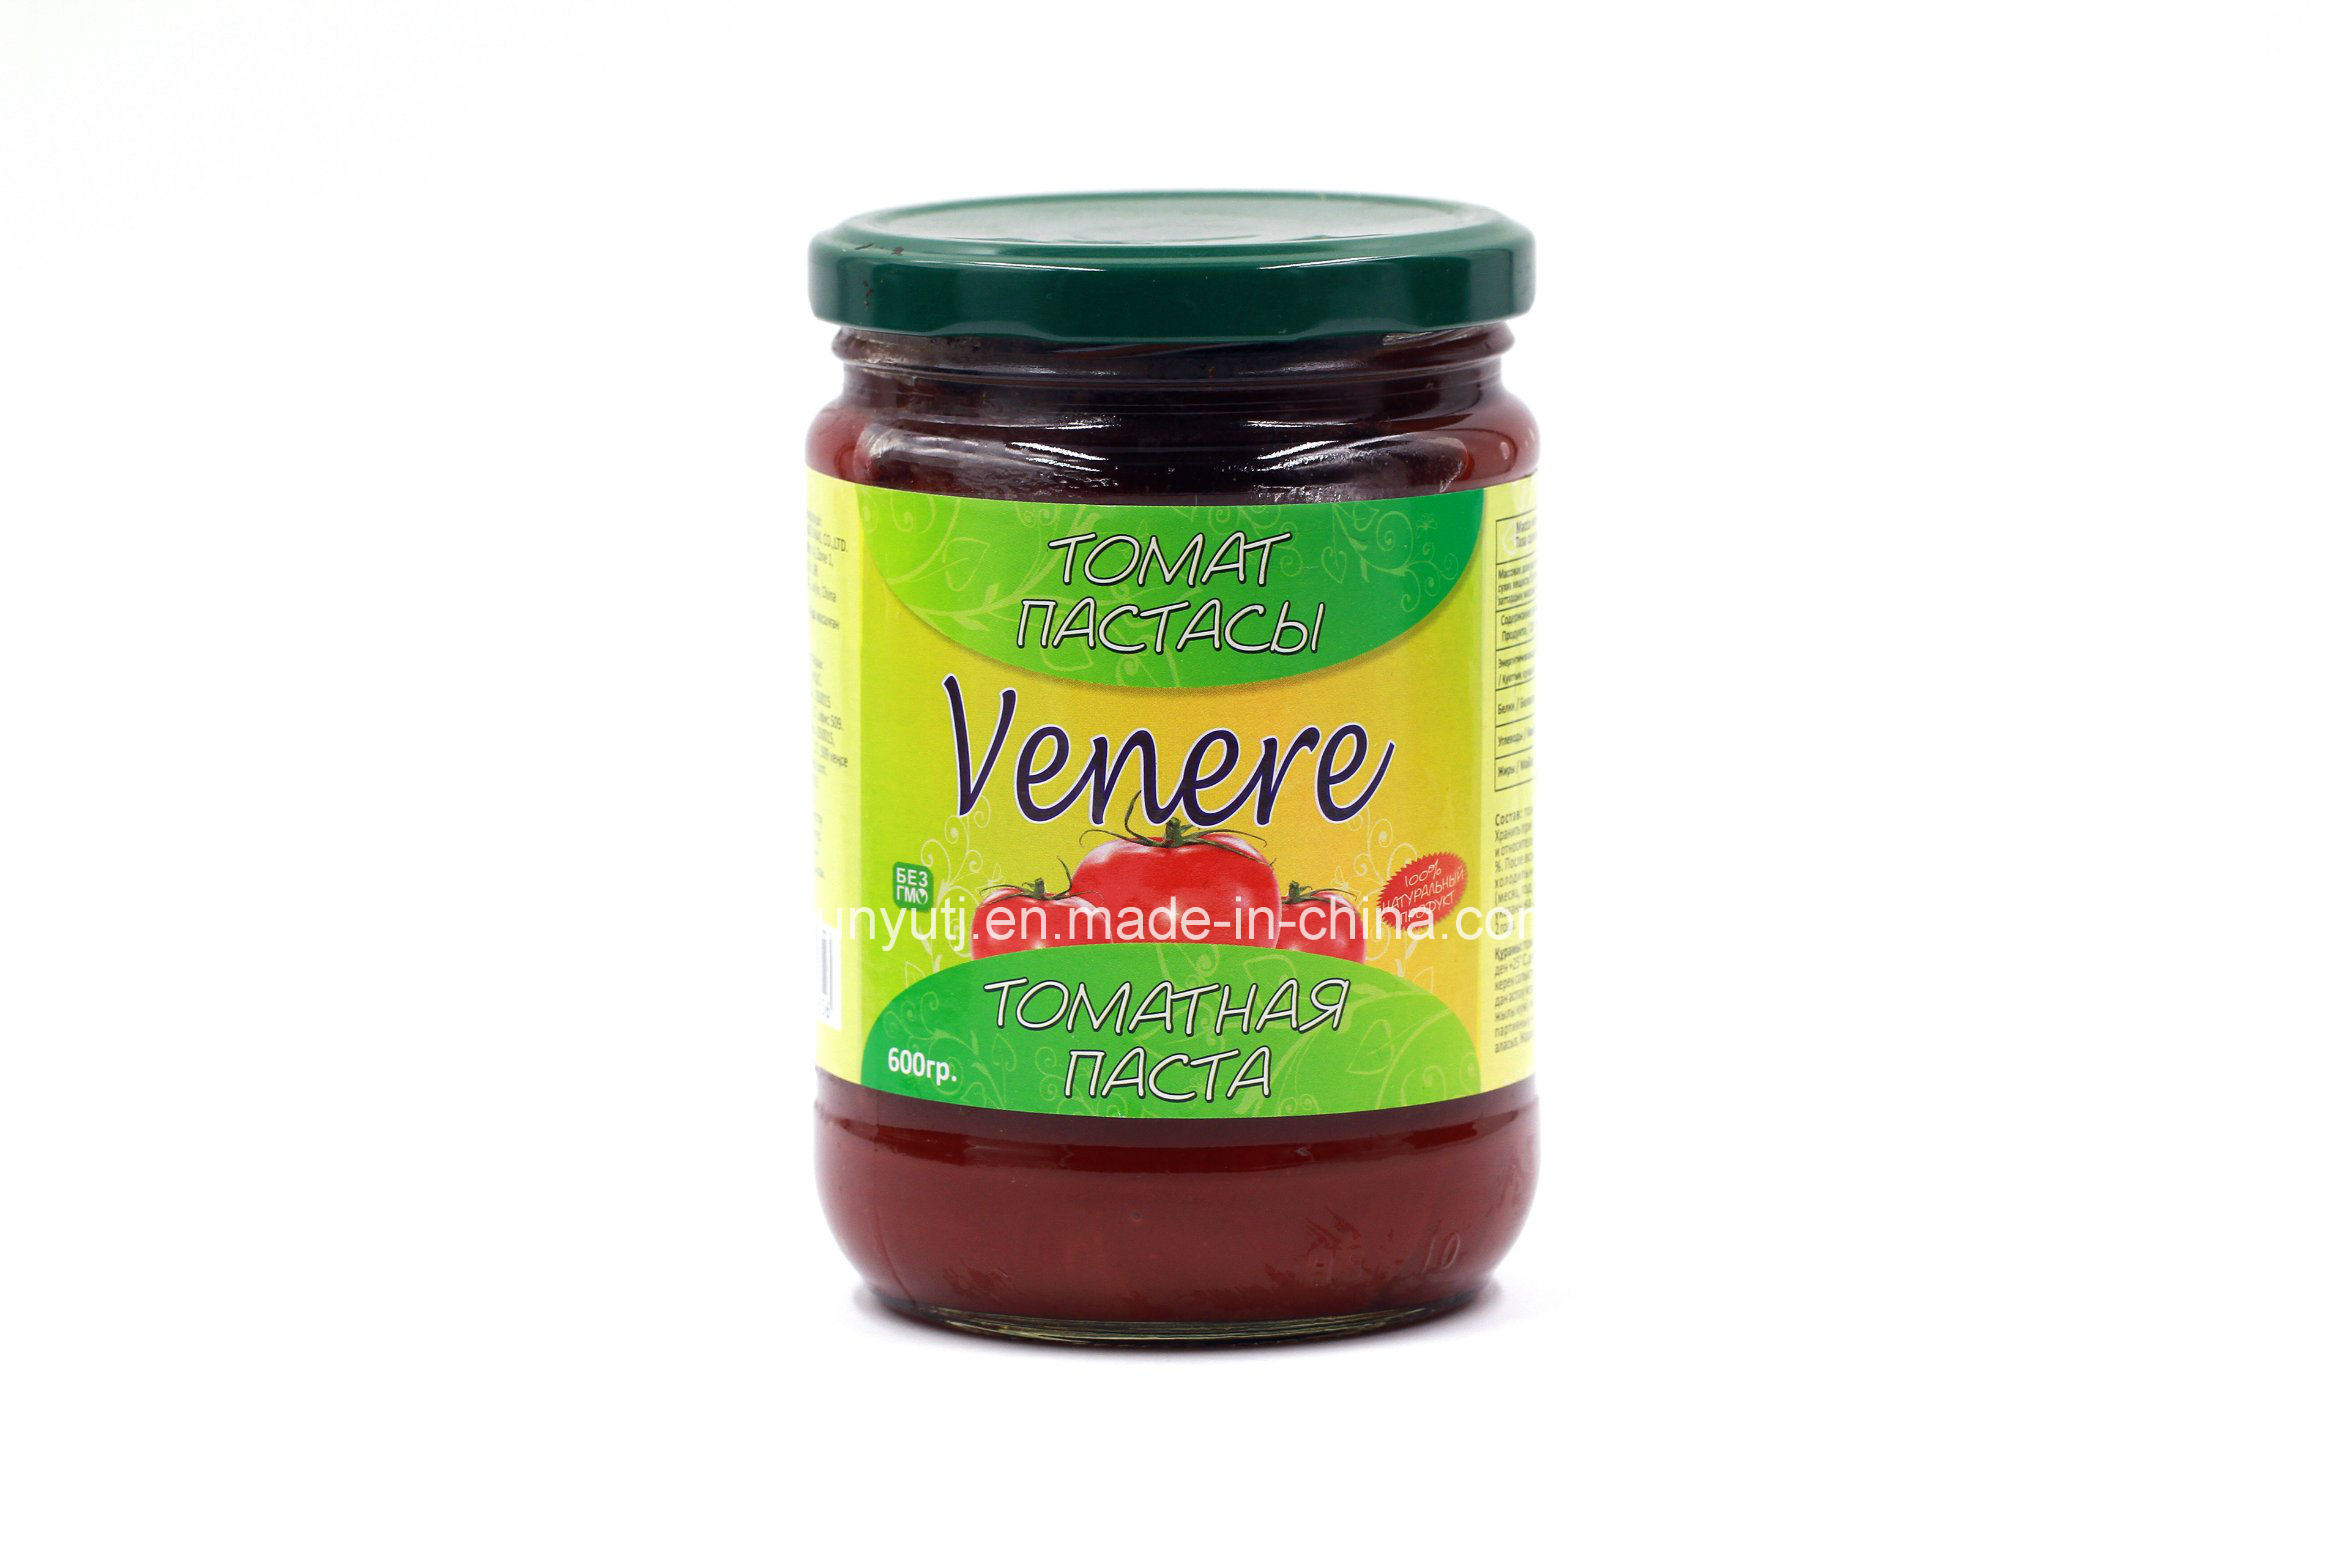 Tomato Paste in Glass Jar with High Quality